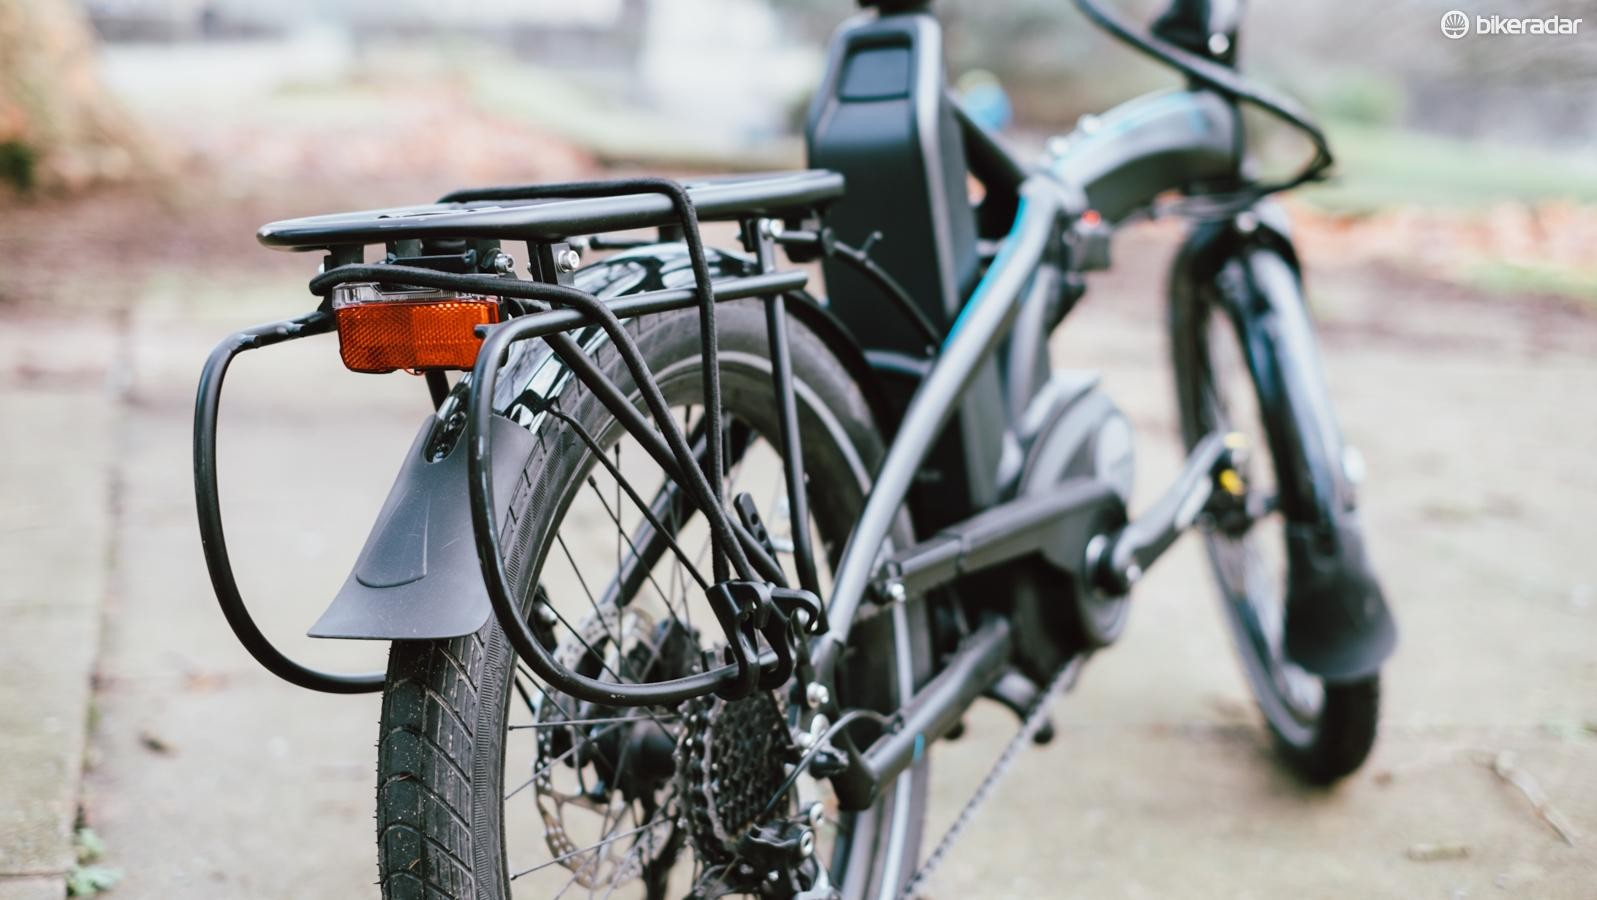 The cargo rack adds useful haul-ability to an already practical machine